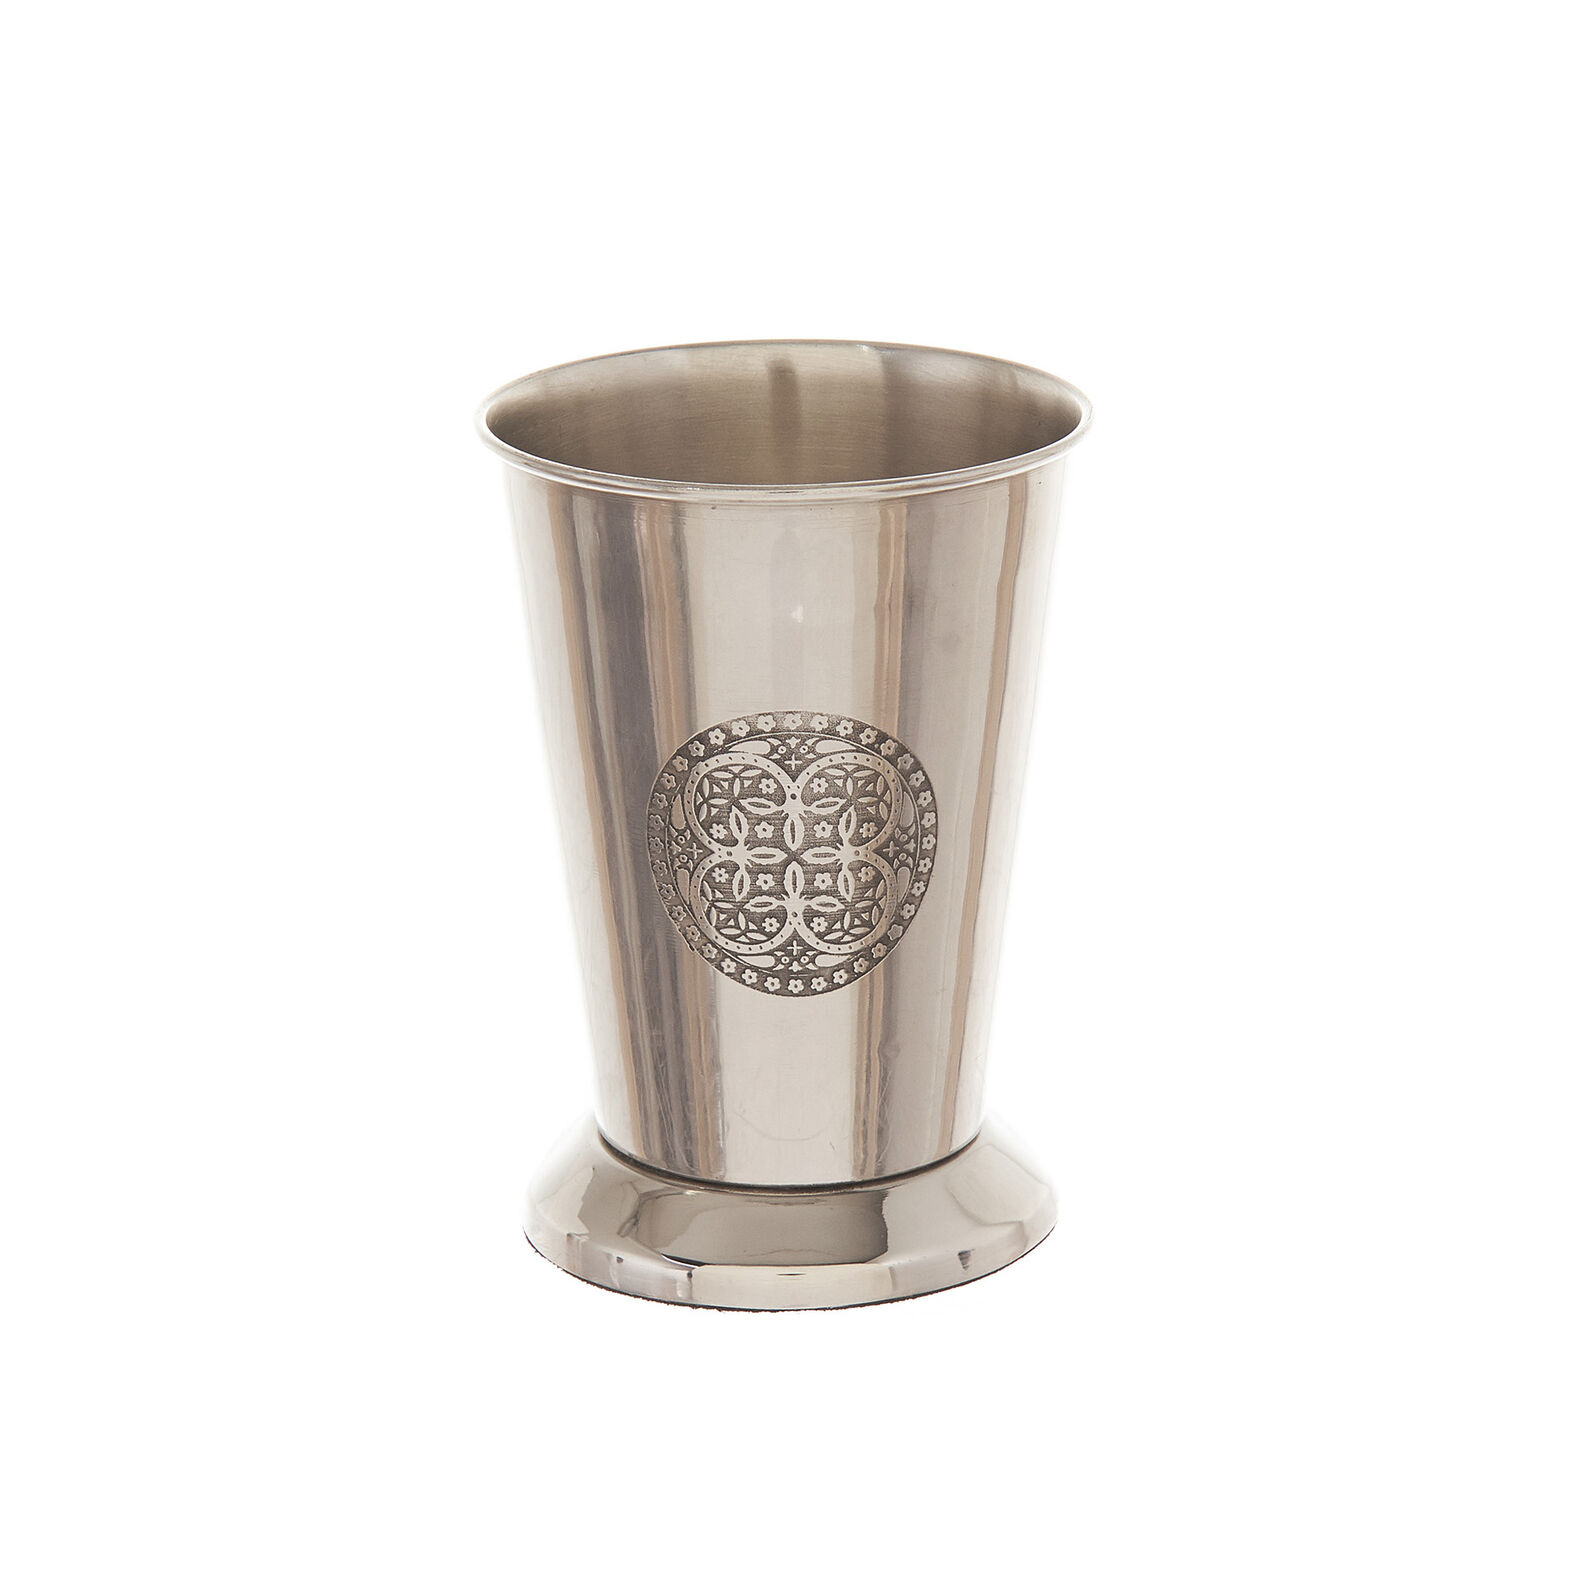 Engraved steel toothbrush holder